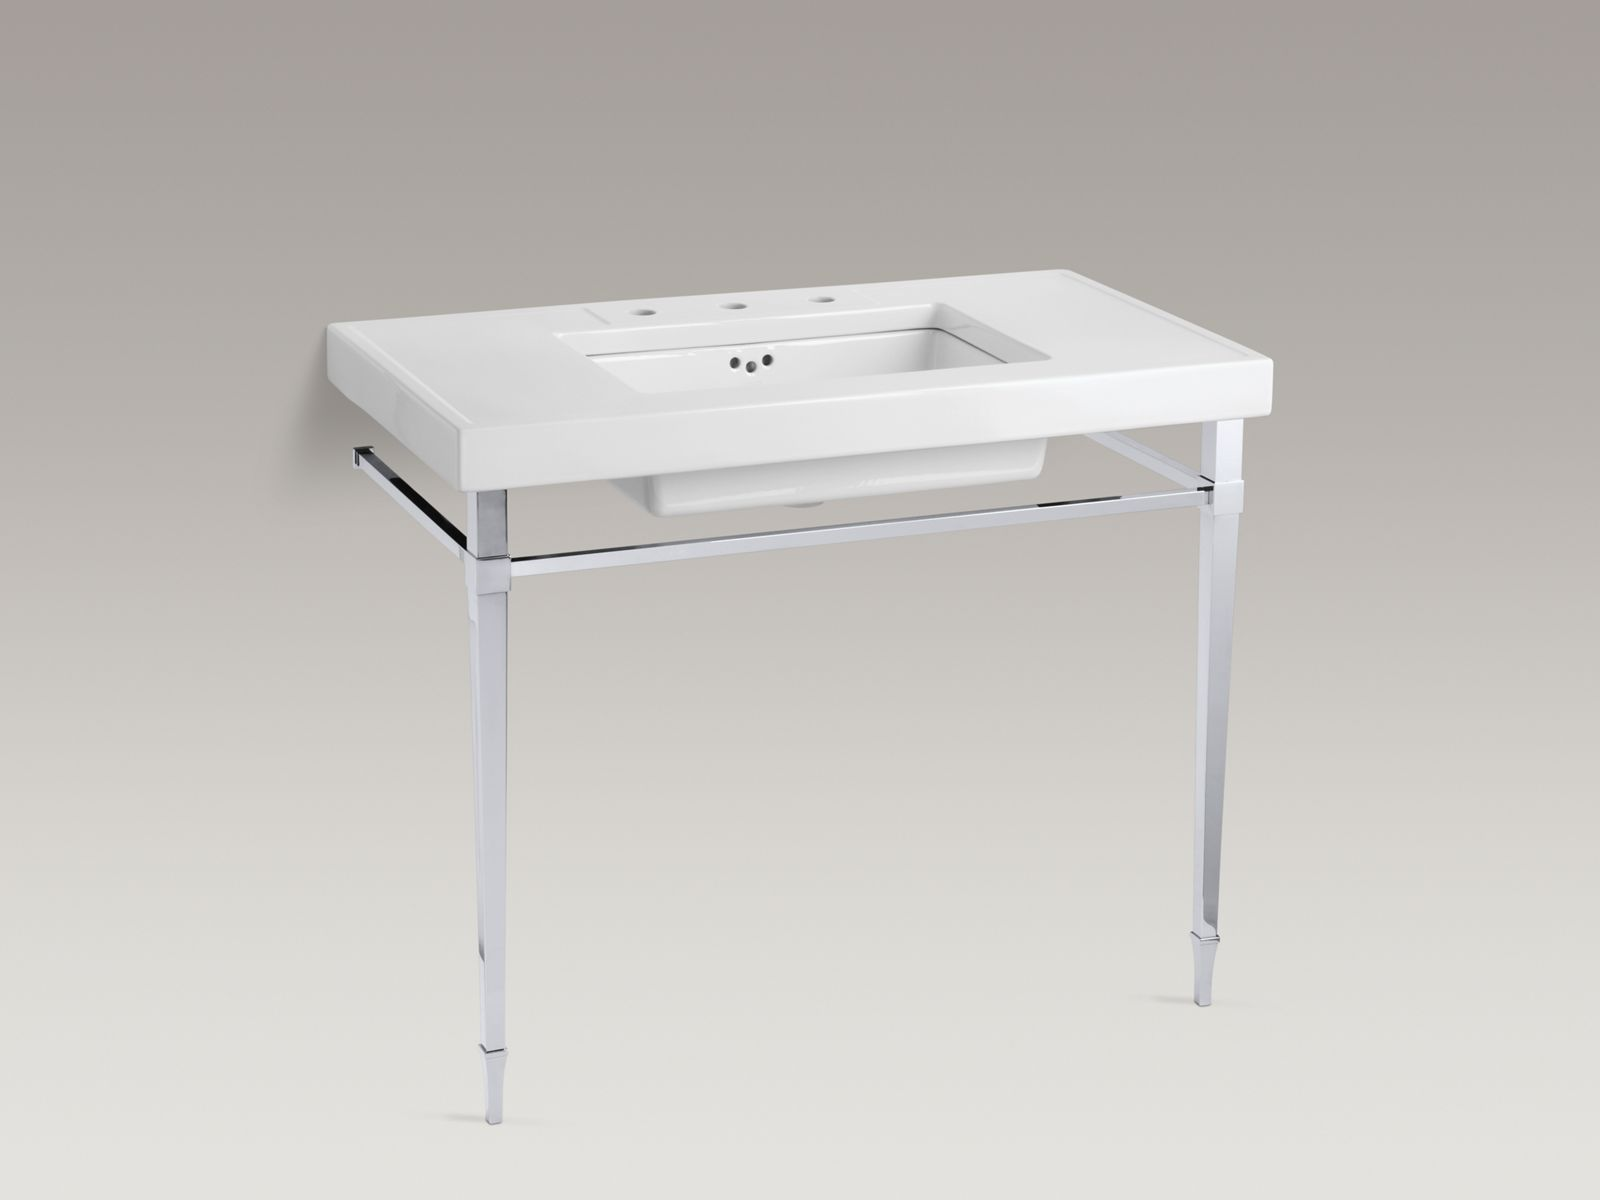 Shown with Kathryn® tabletop K-3028-K2, Kathryn lavatory K-2297-G-7 and standard pop-up drain, not included.